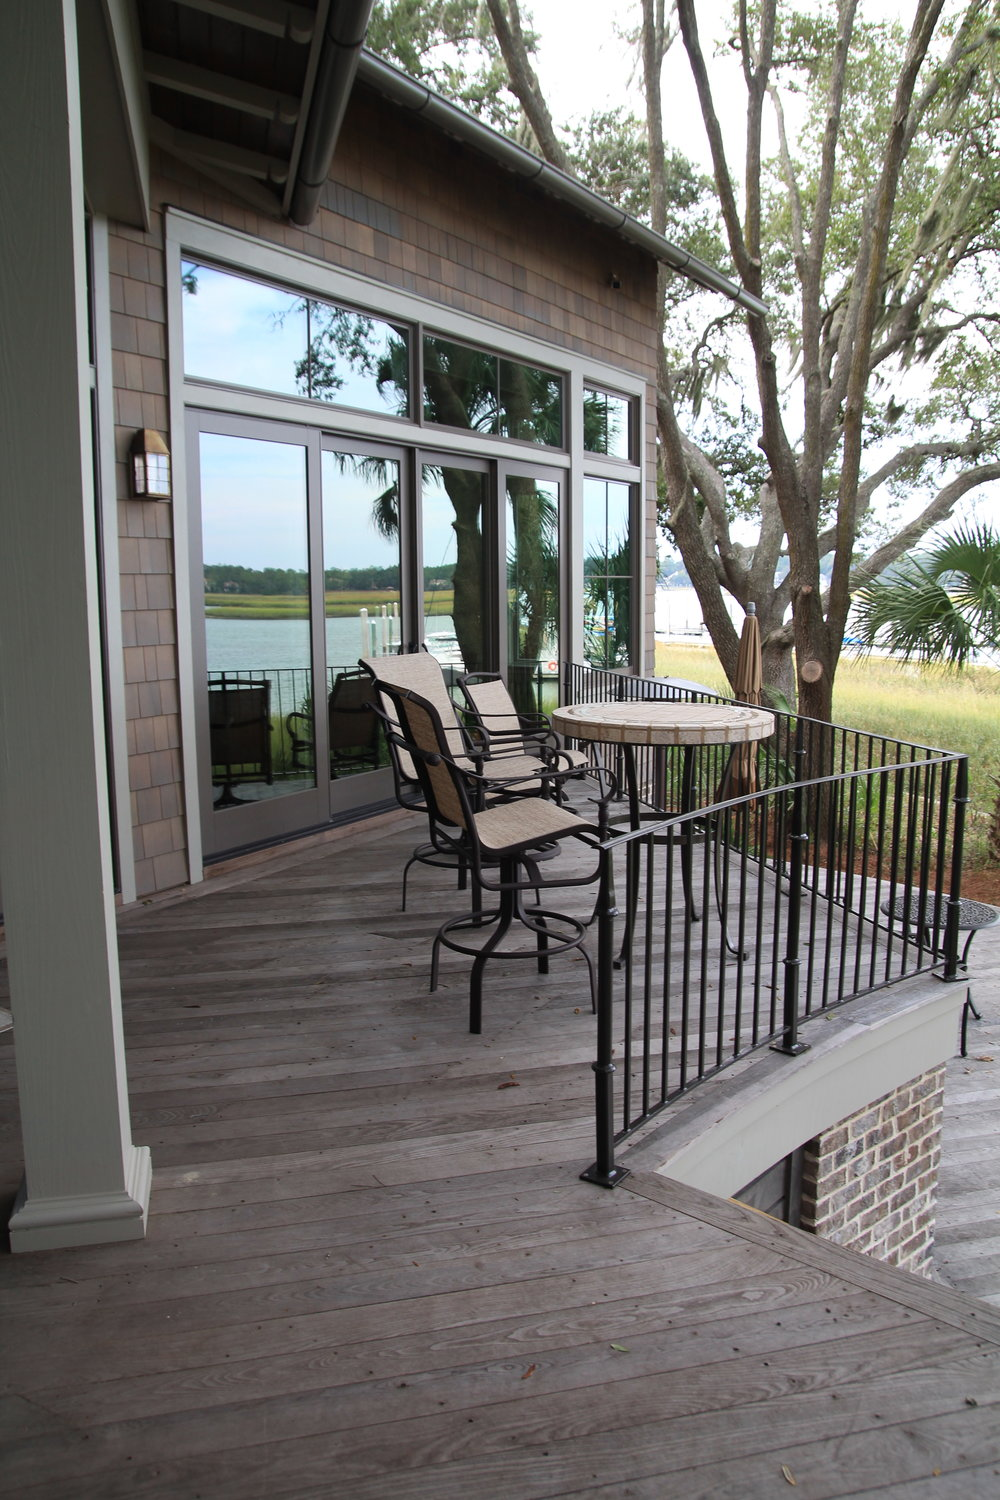 What a lovely deck, the perfect place to enjoy the view and a cup of coffee!